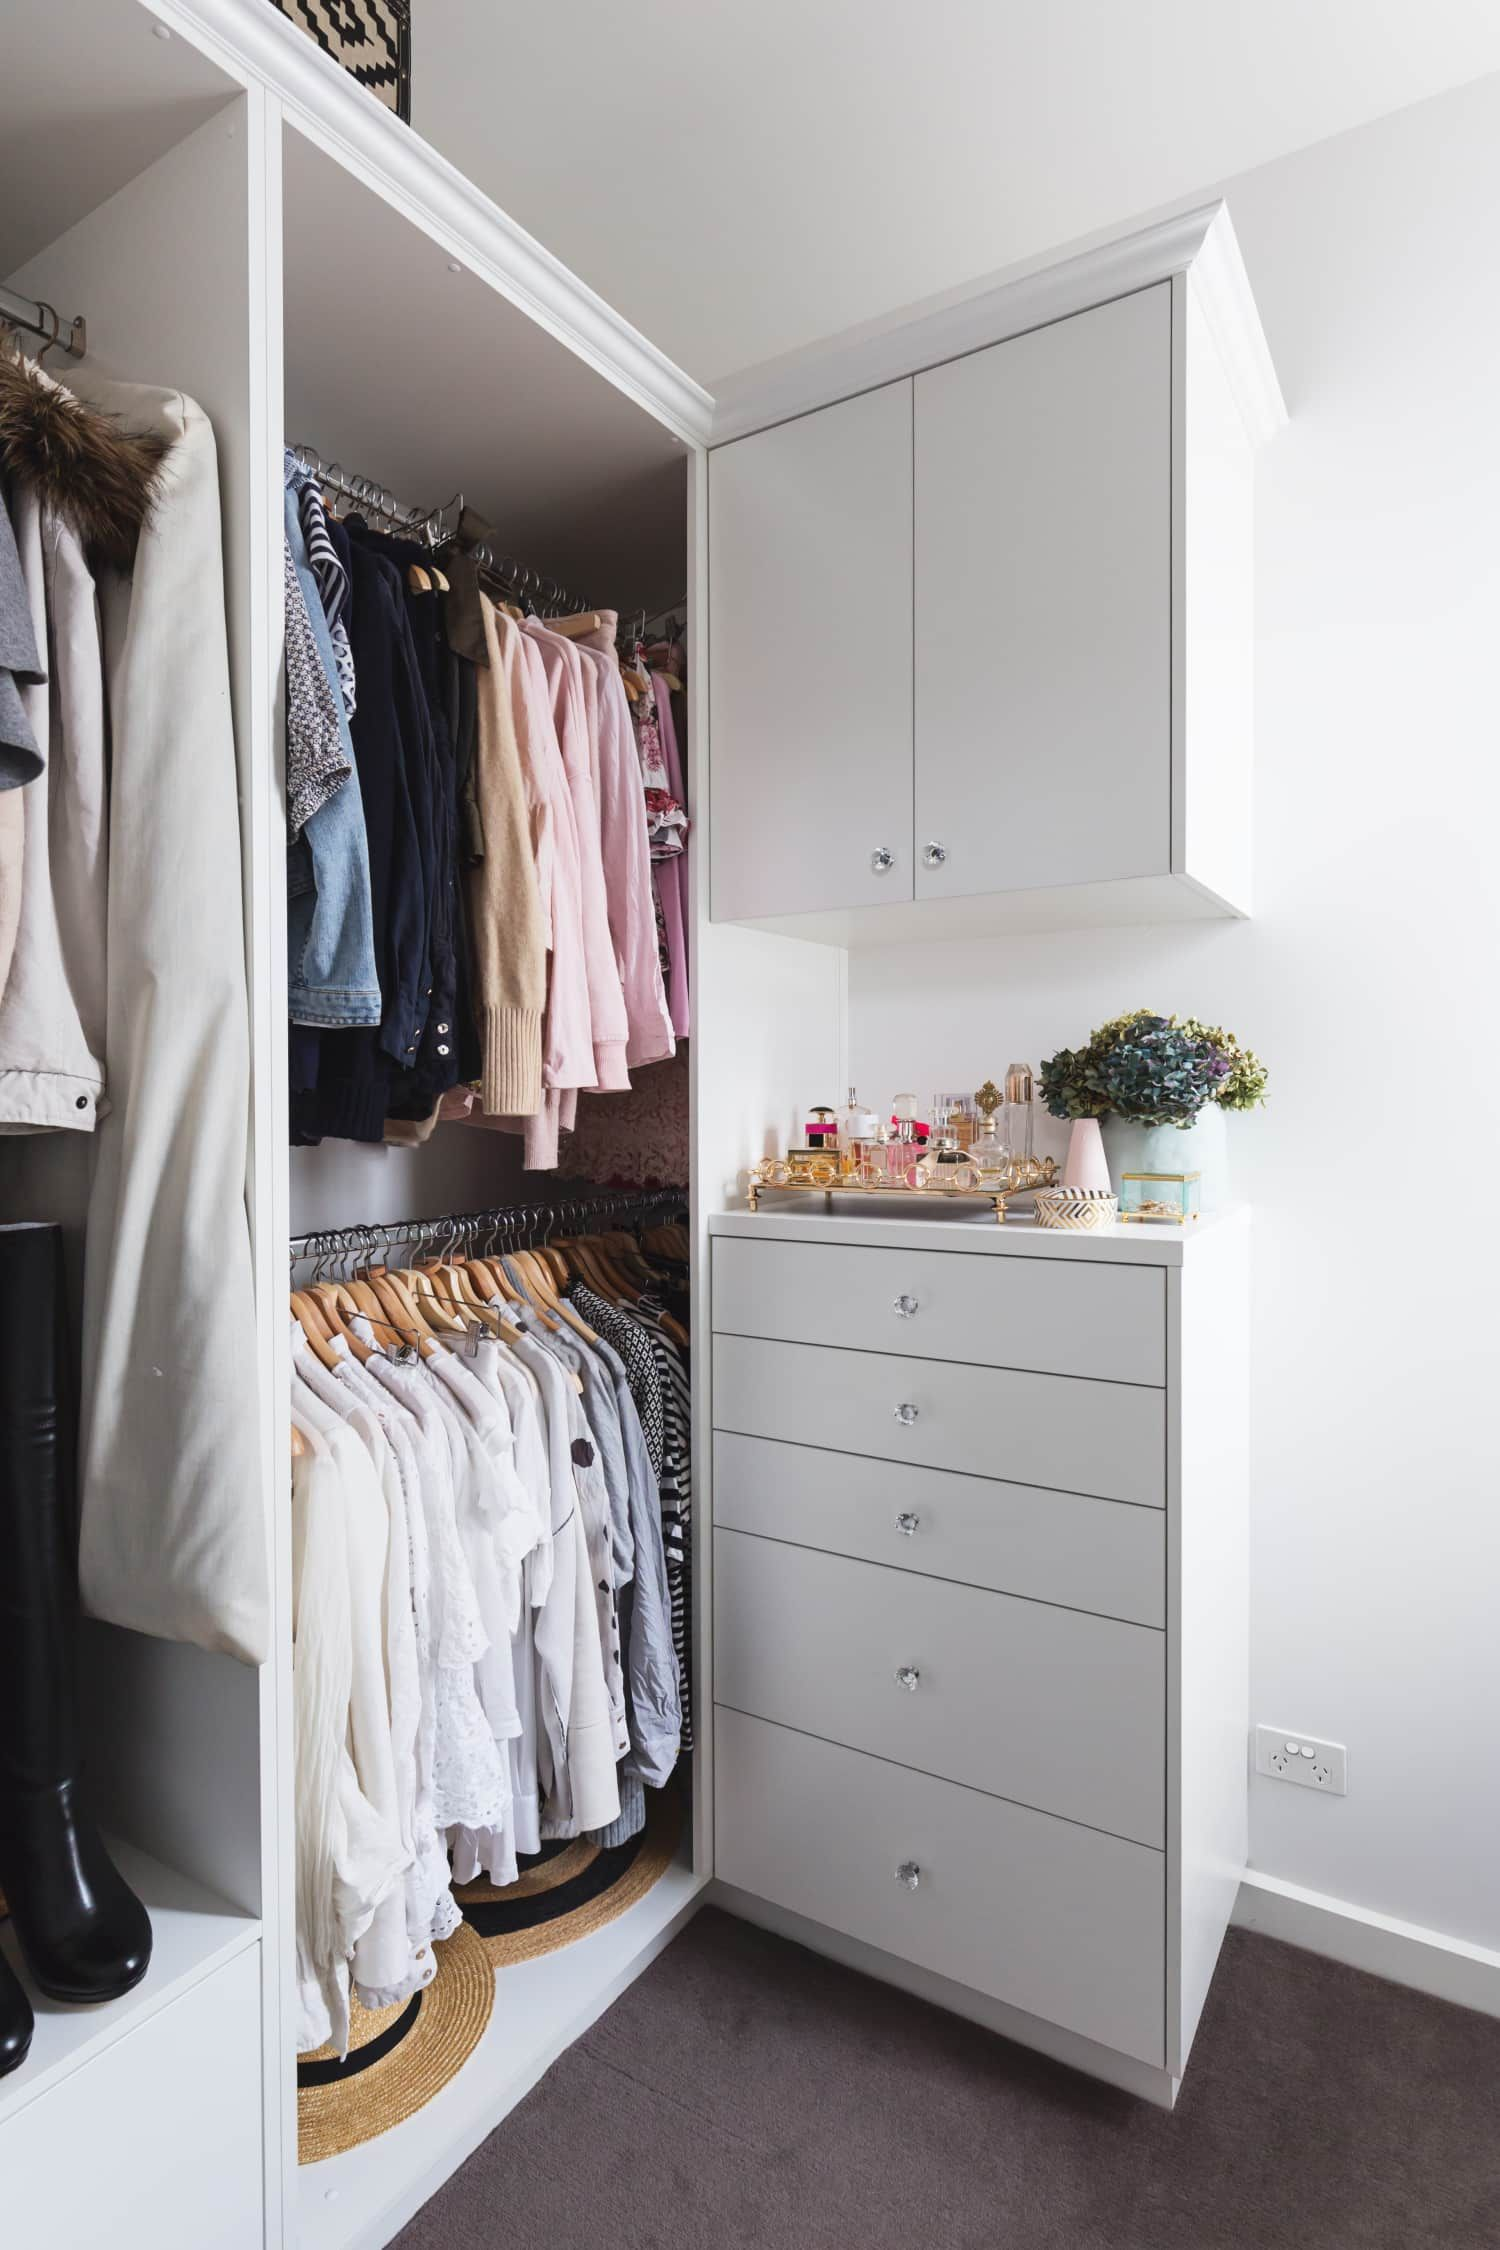 get a closet that works for you 5 ways to customize yours closet rh pinterest com